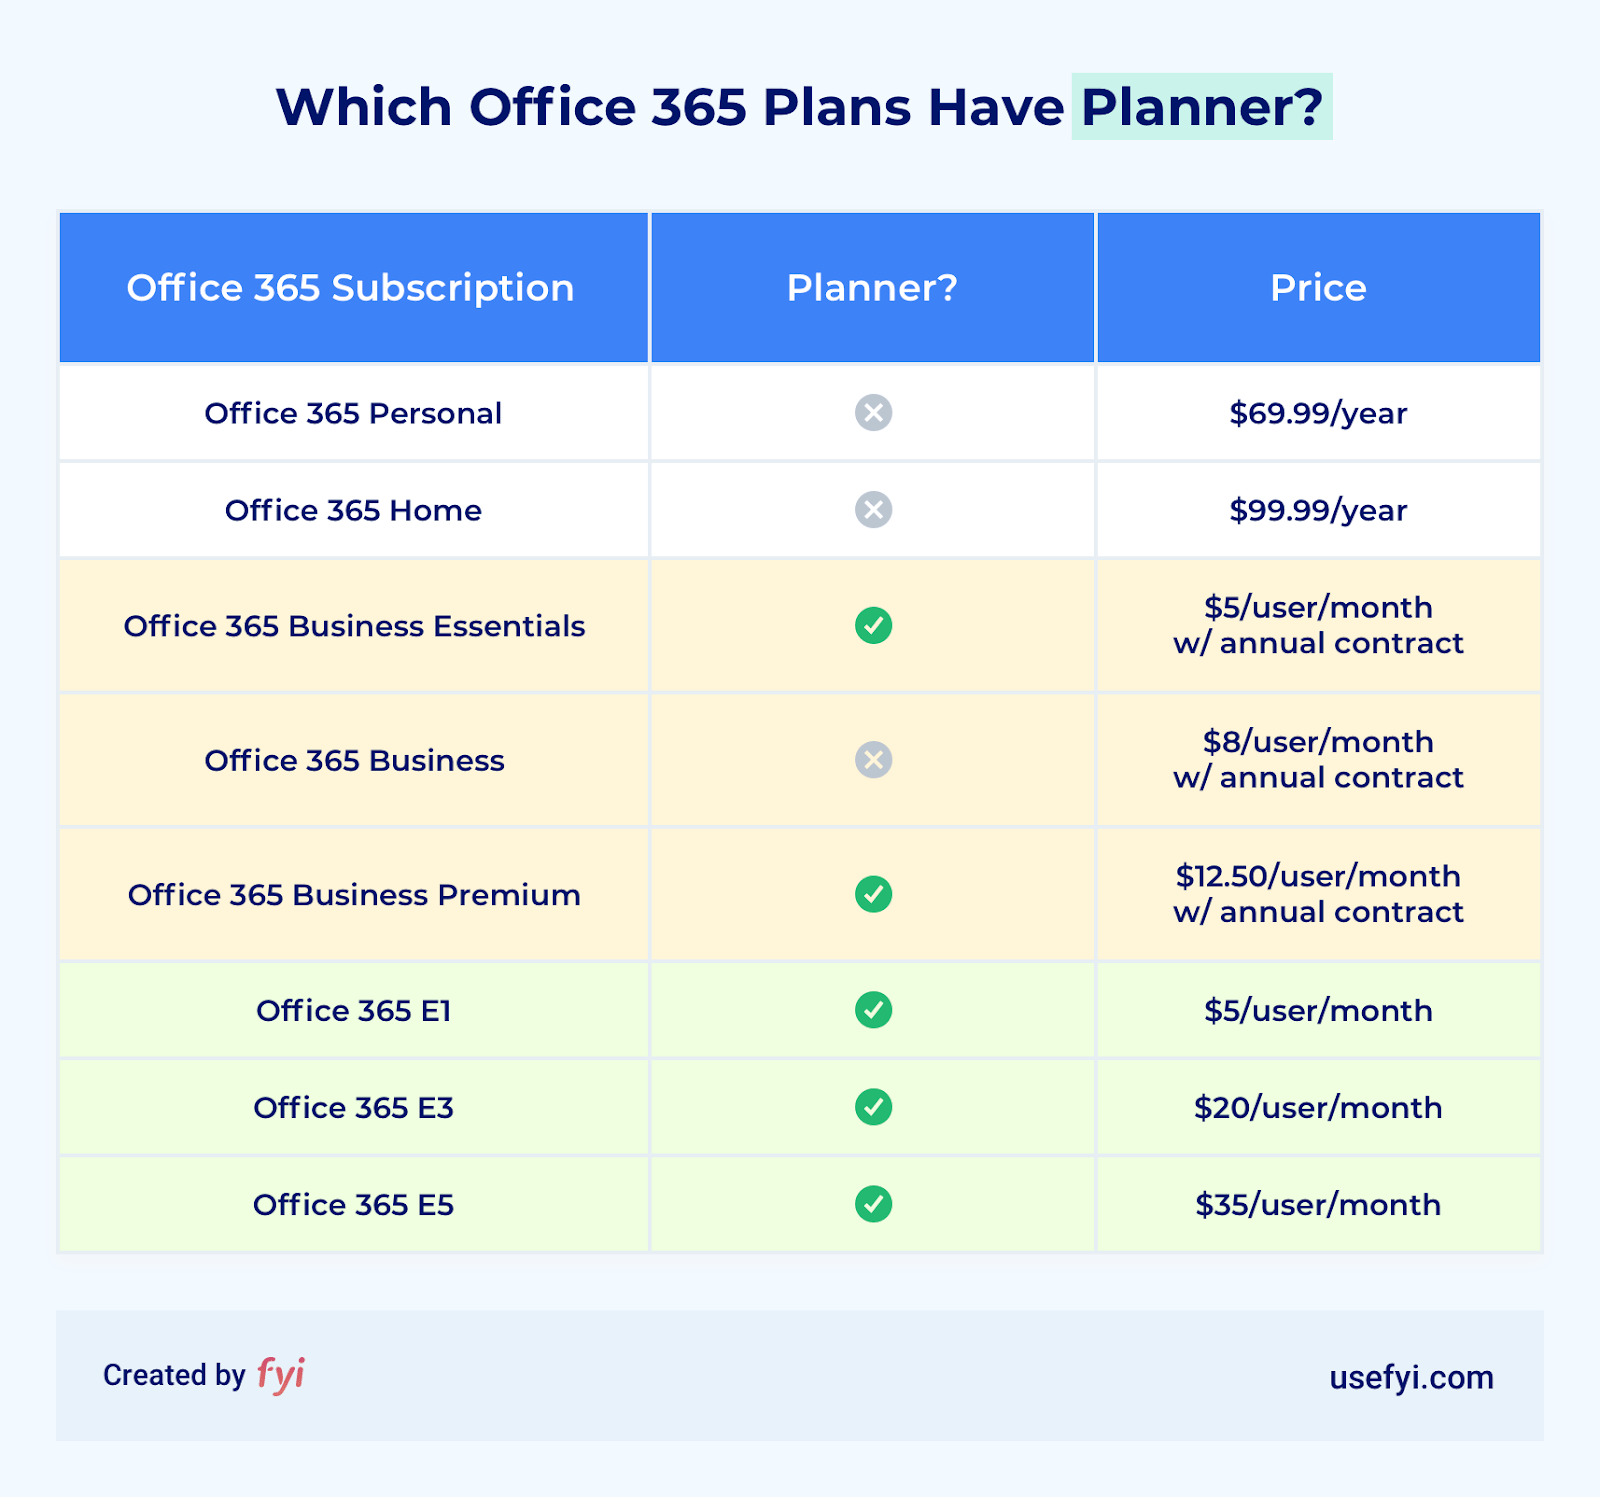 office 365 plans including planner